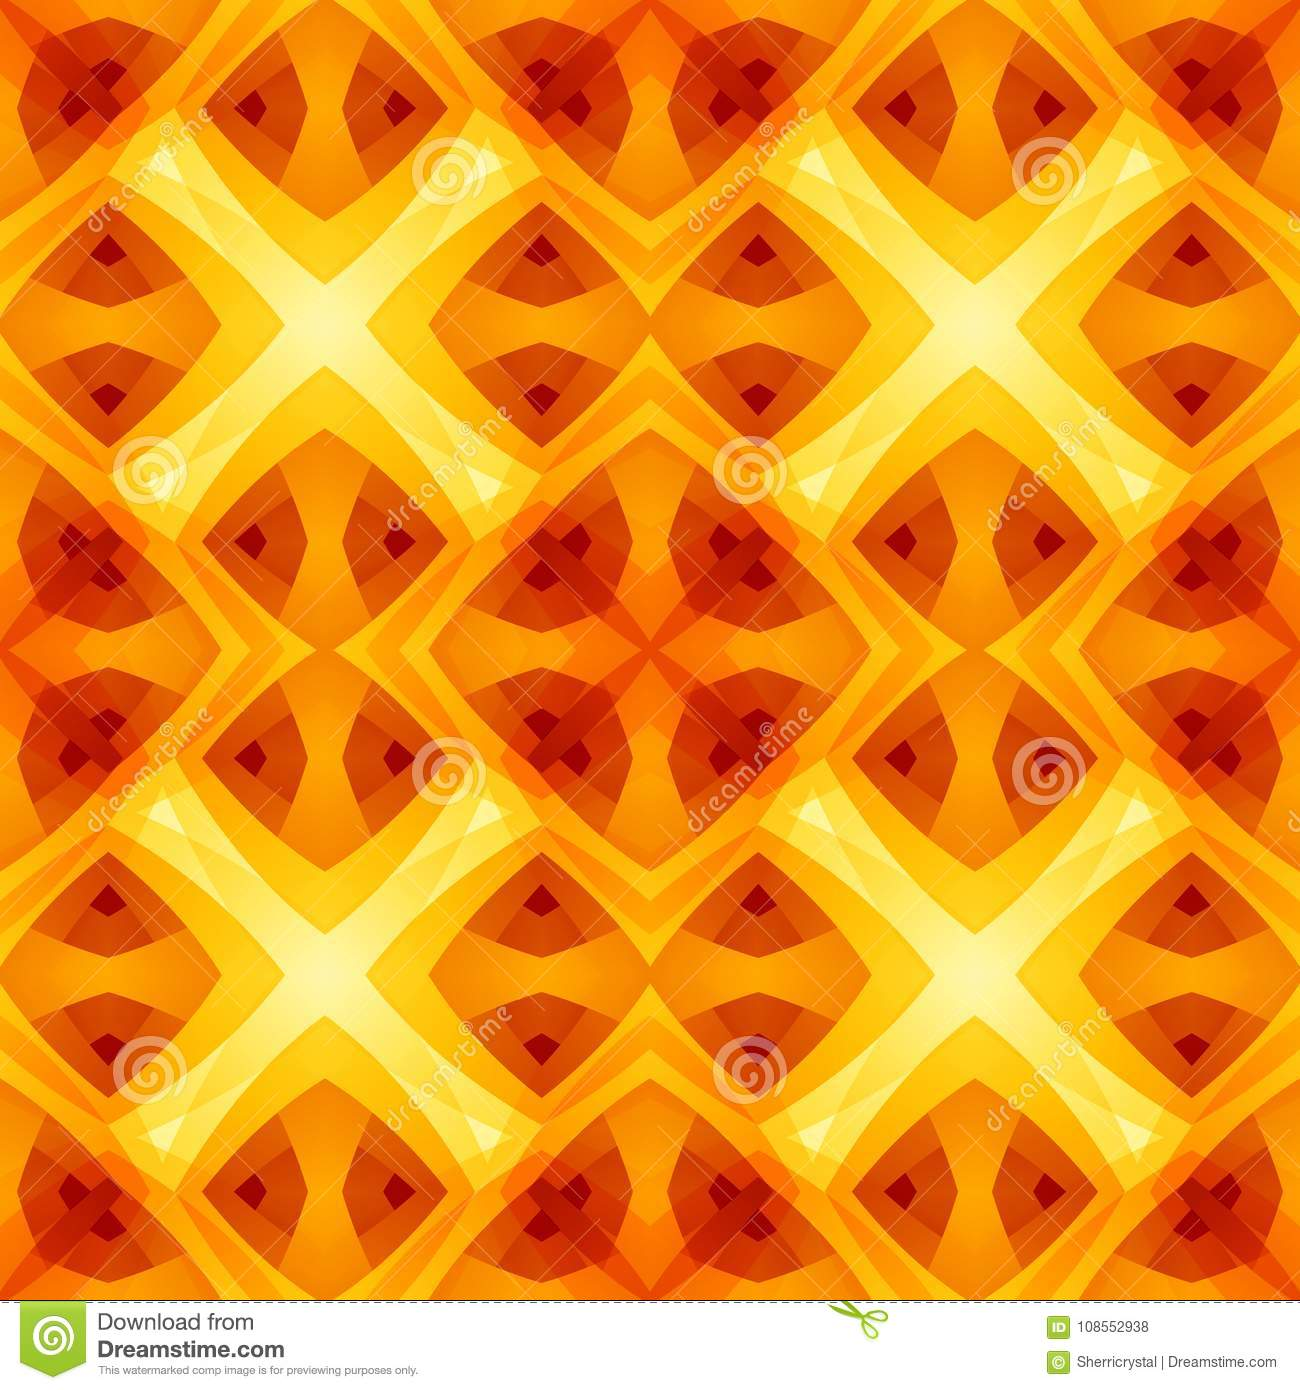 Home Decor Fabric Design Sample. Bright Seamless Tile. Optimistic And  Energetic Background Ill. Royalty Free Illustration